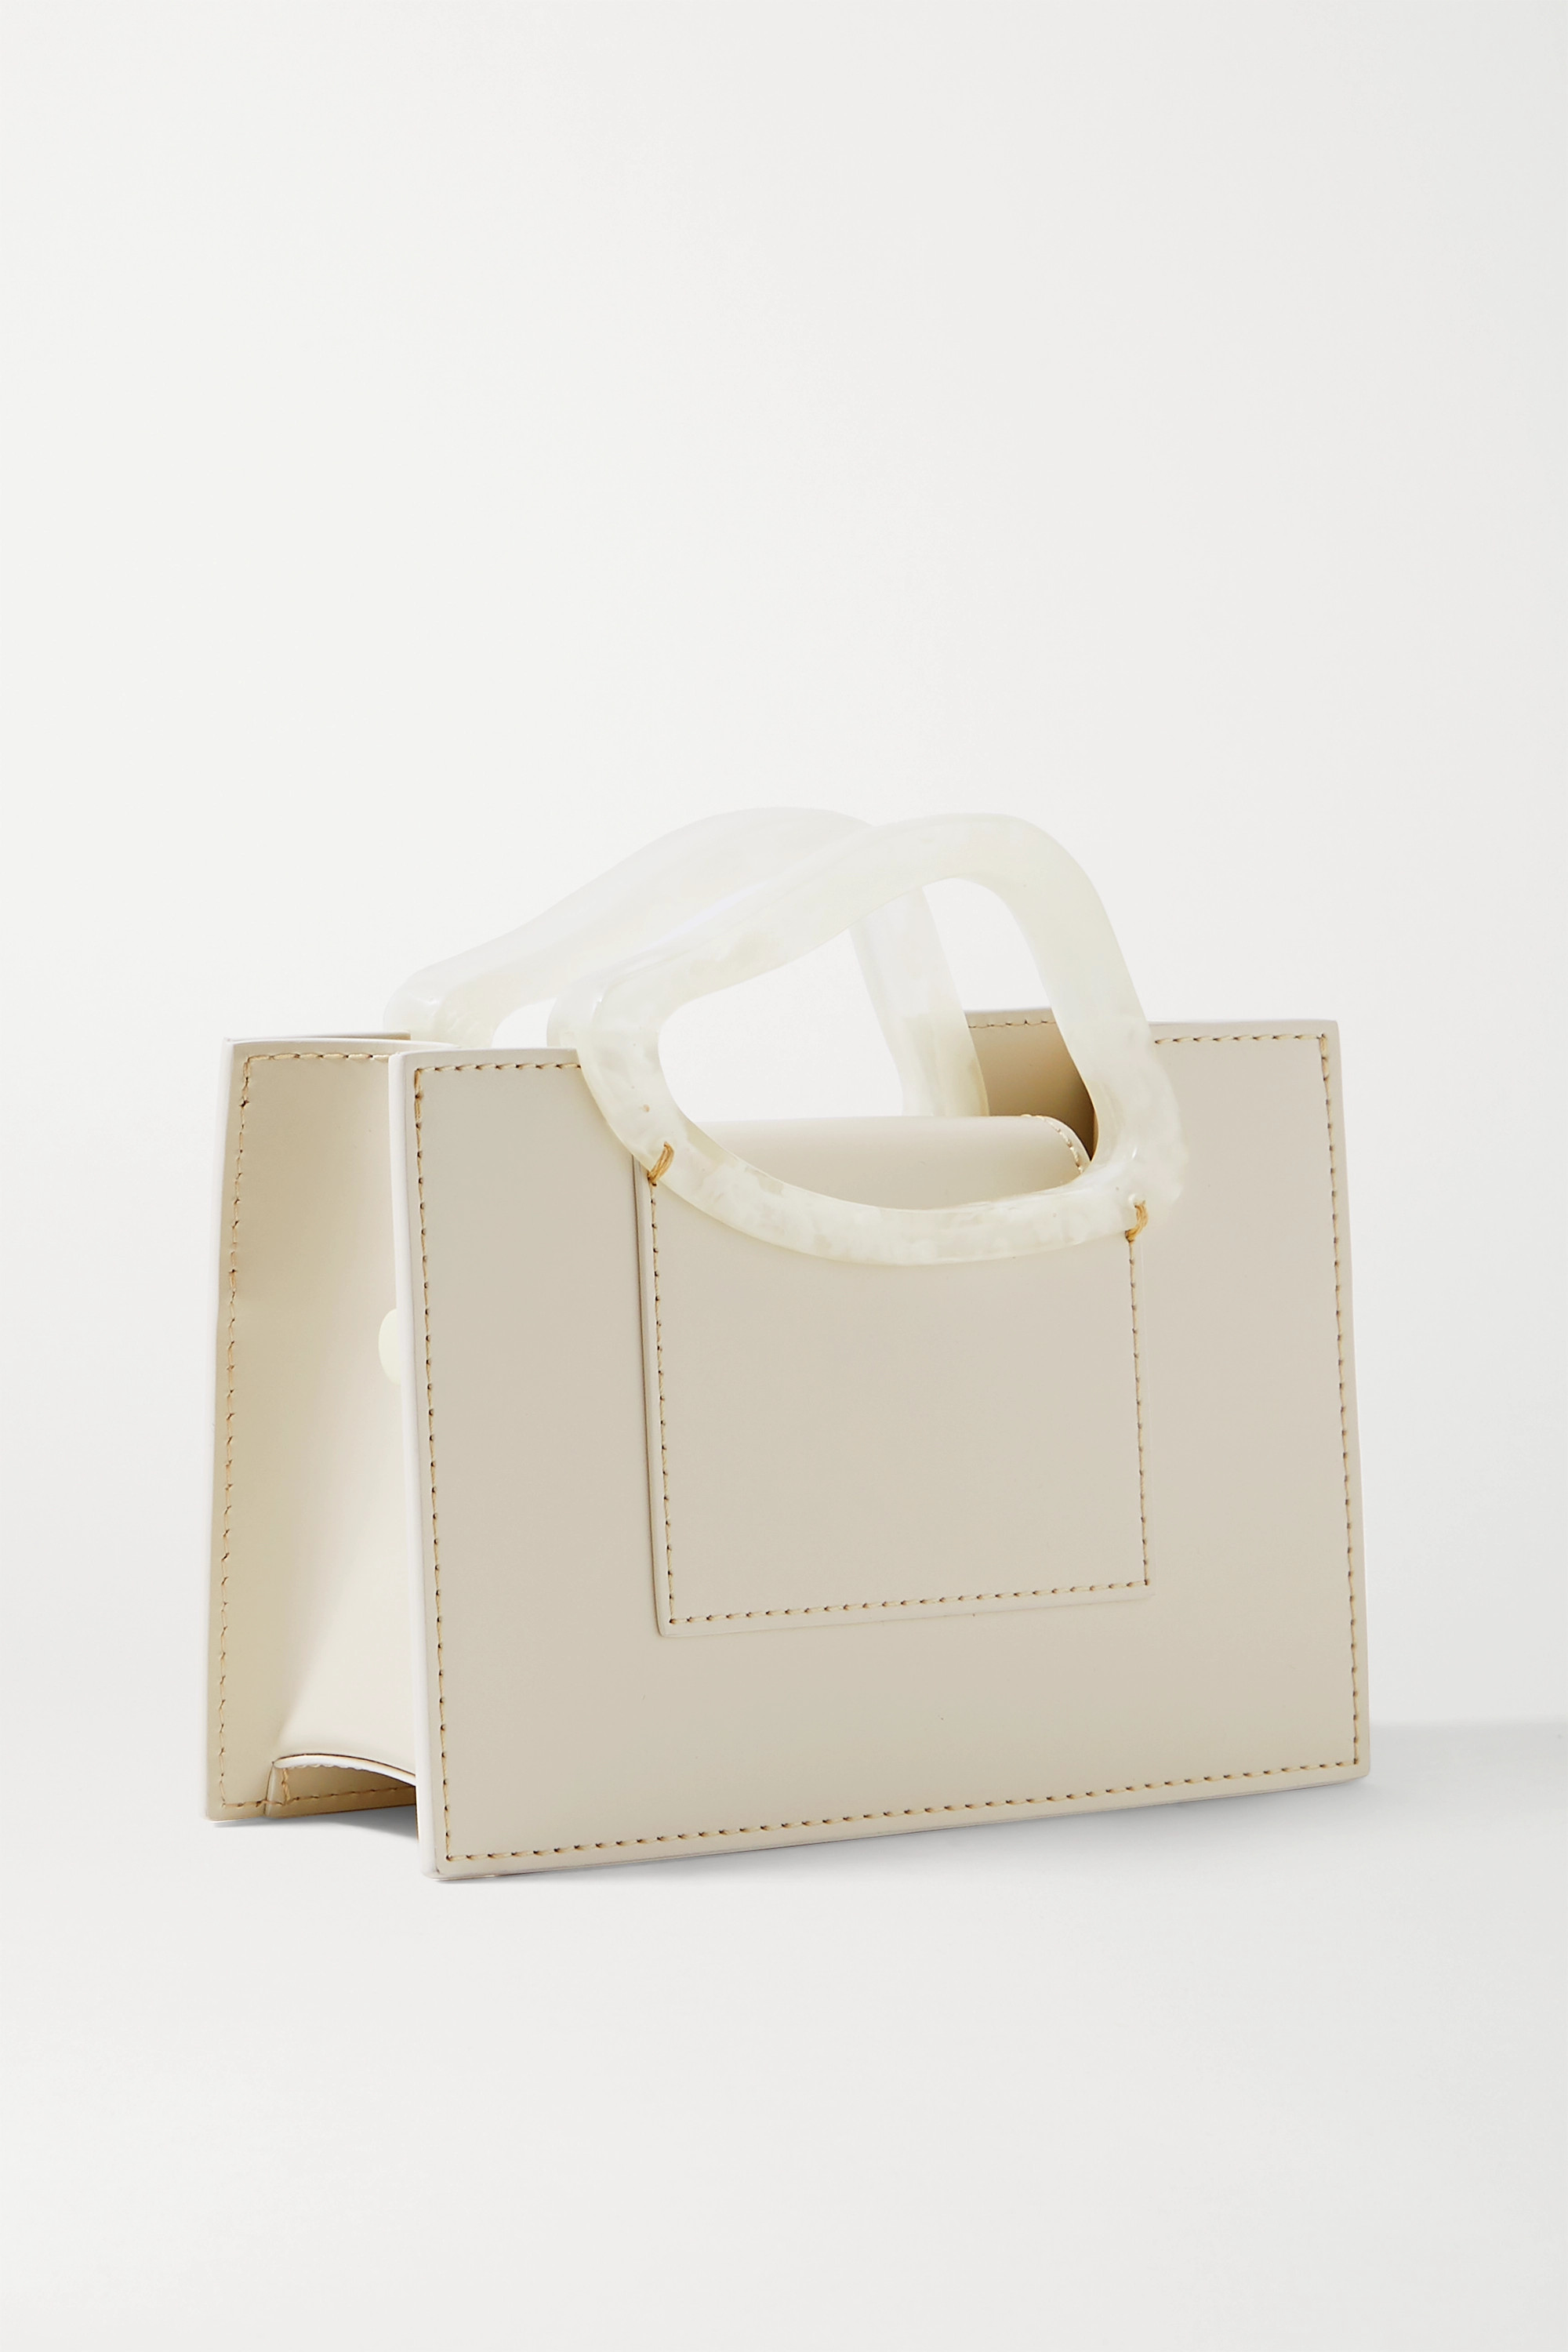 NATURAE SACRA + NET SUSTAIN Arp mini leather and resin tote